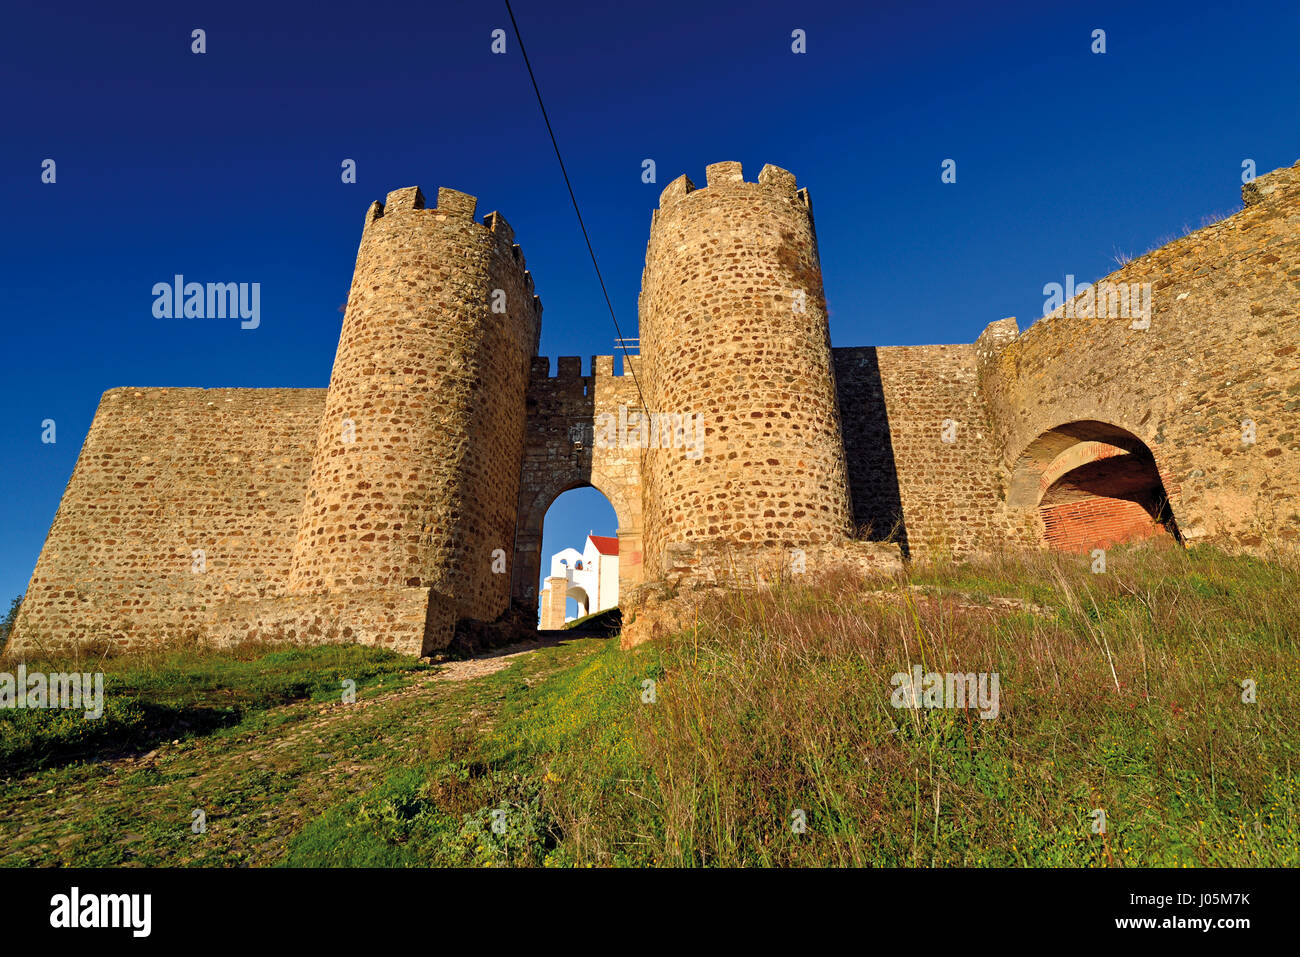 Portugal: Entrance and towers of medieval castle of Evoramonte Stock Photo